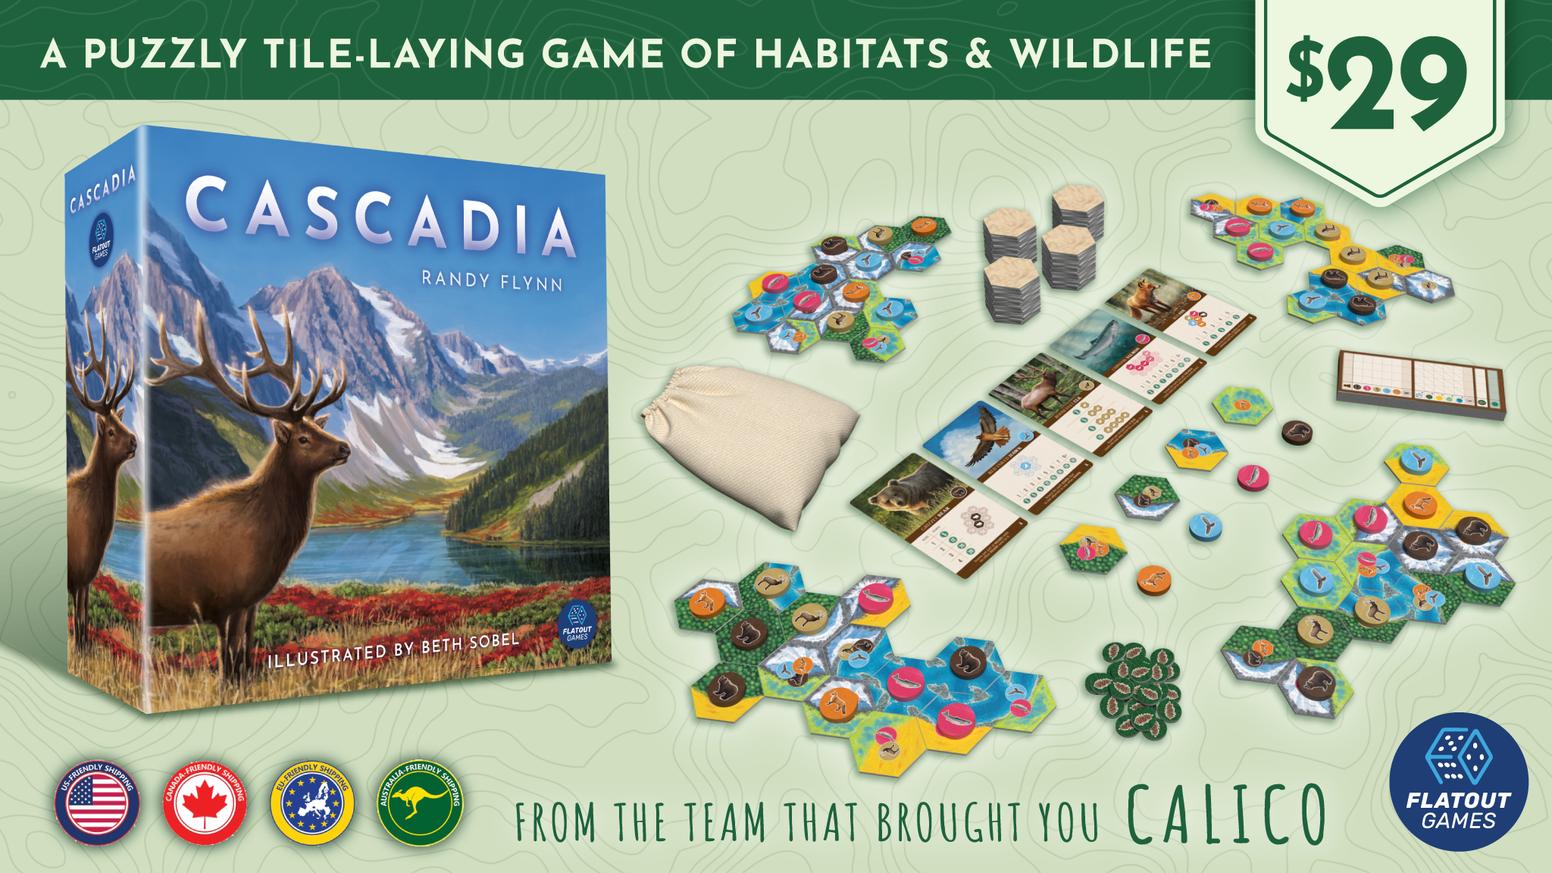 A puzzly tile-laying game featuring the habitats and wildlife of the Pacific Northwest with gorgeous artwork by Beth Sobel!